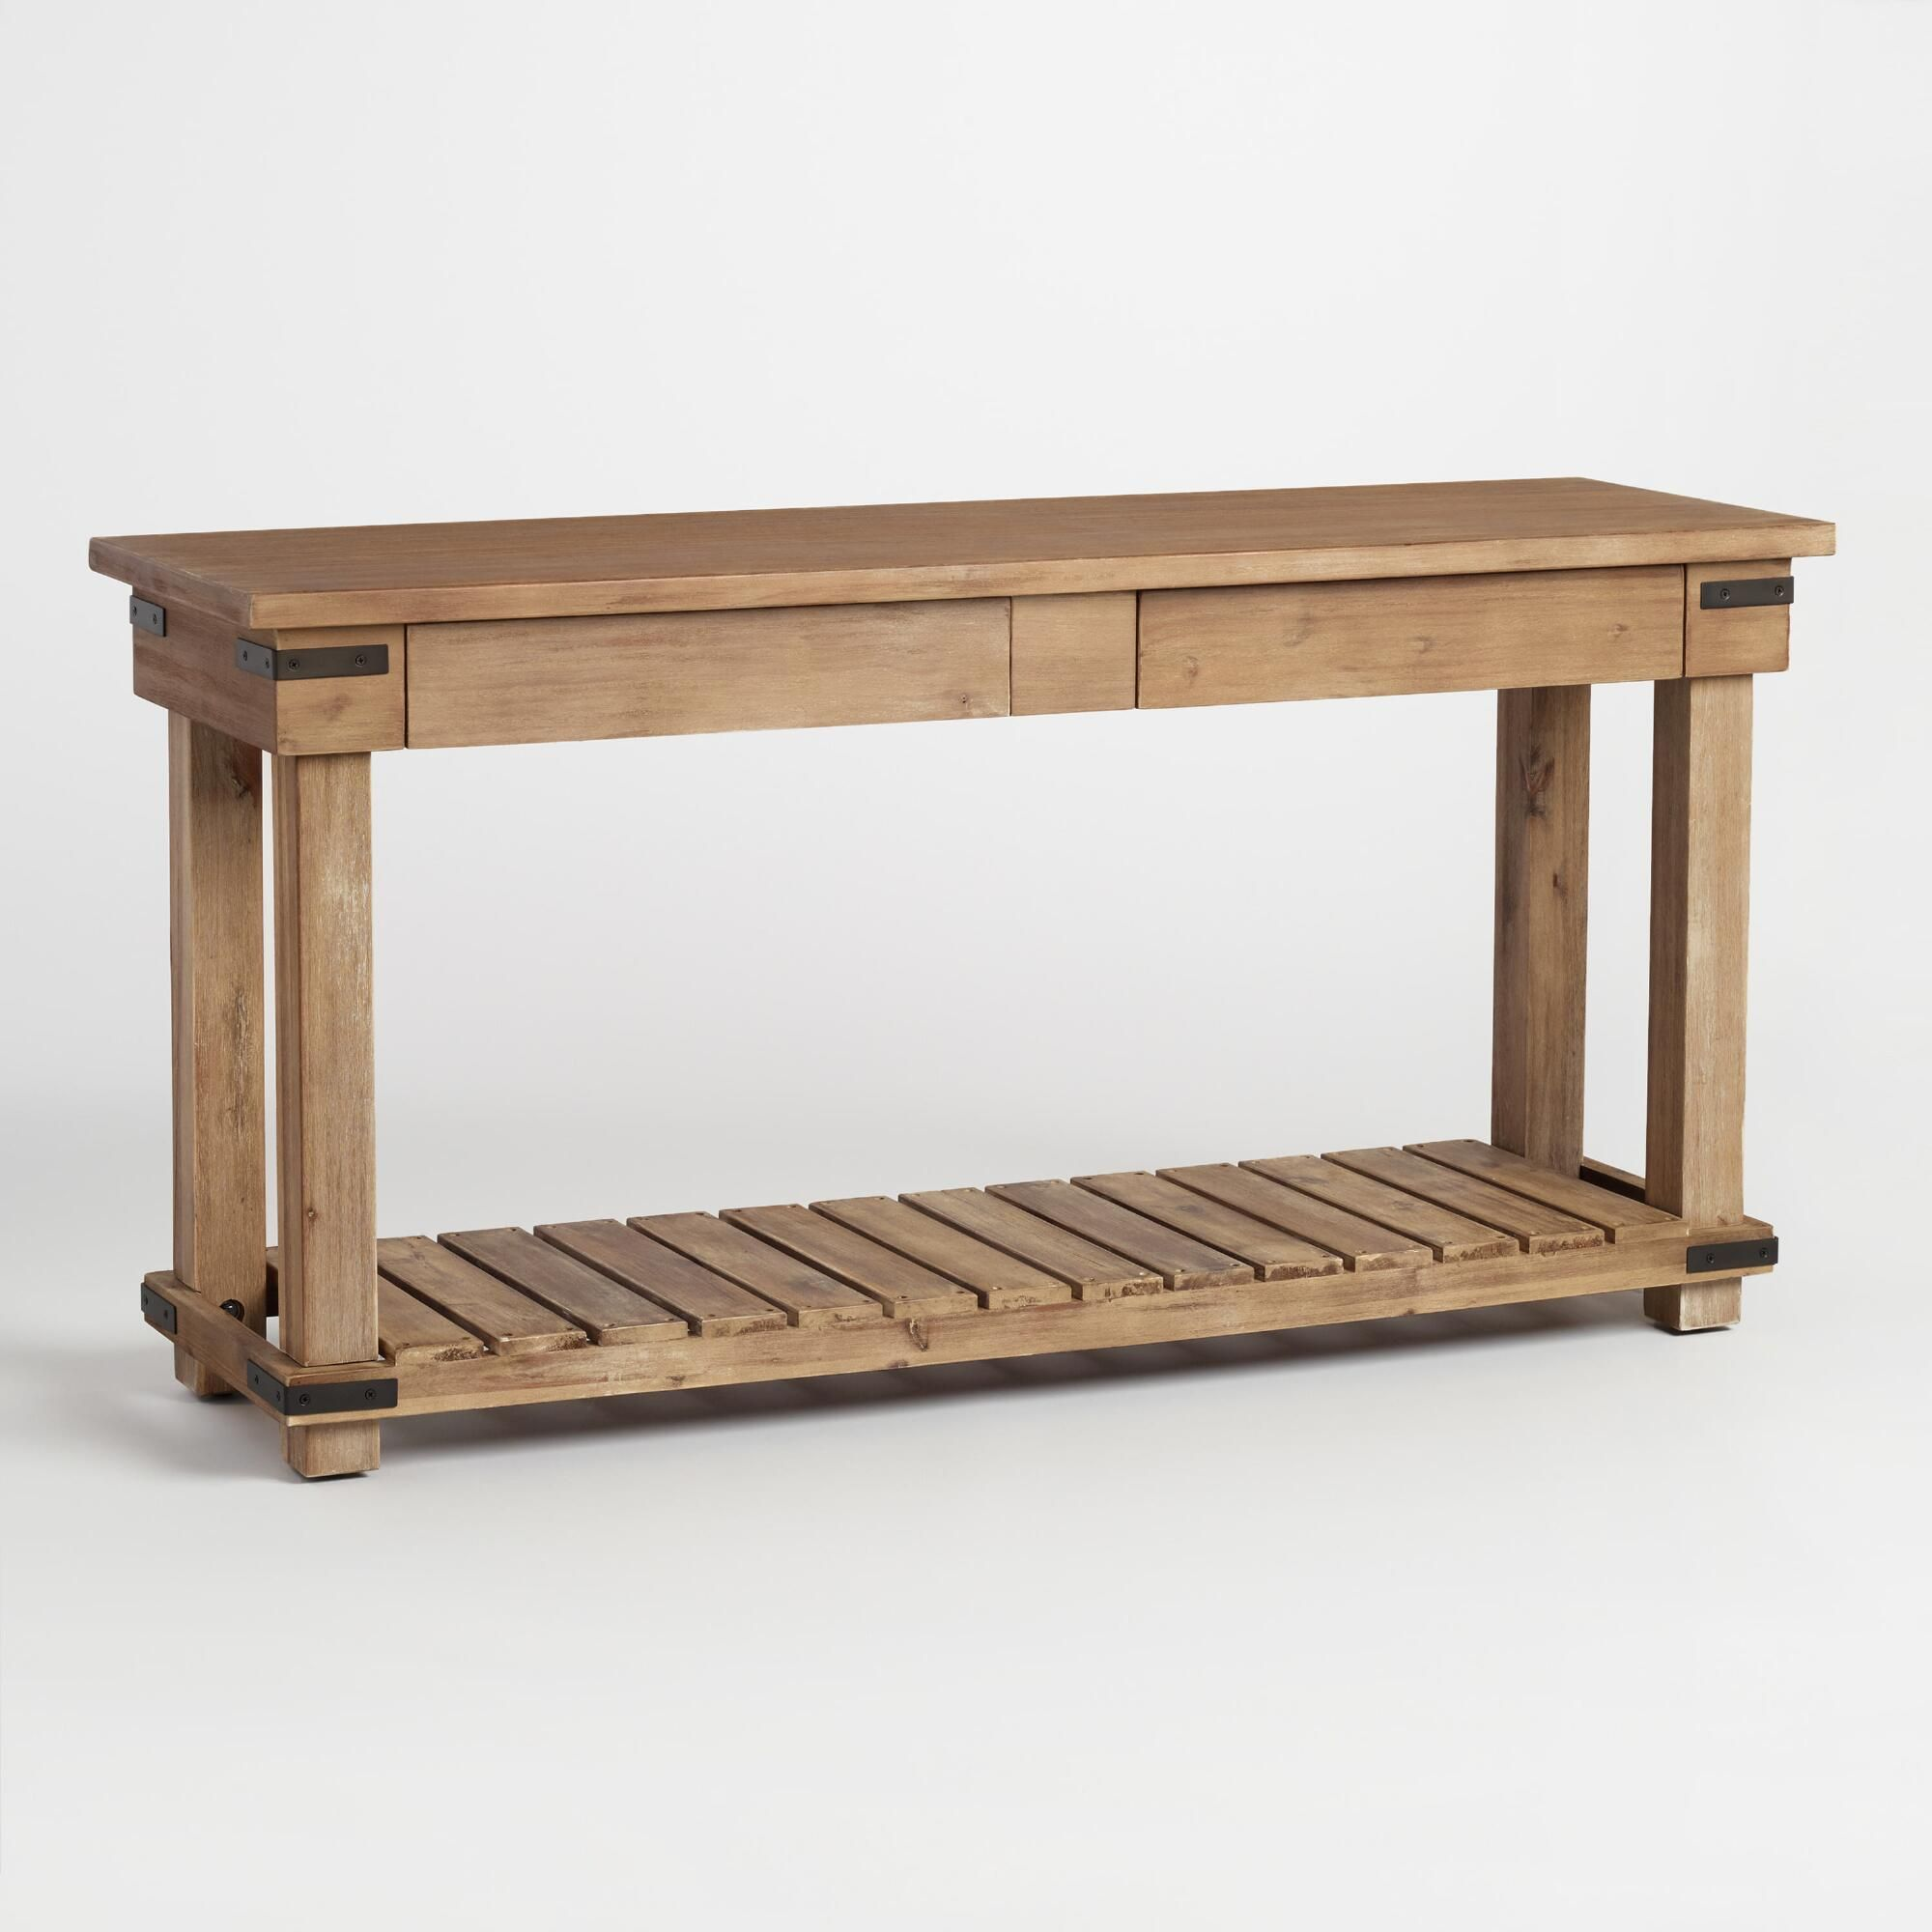 Hallway furniture oak In a weathered beach finish our wooden console table is a versatile